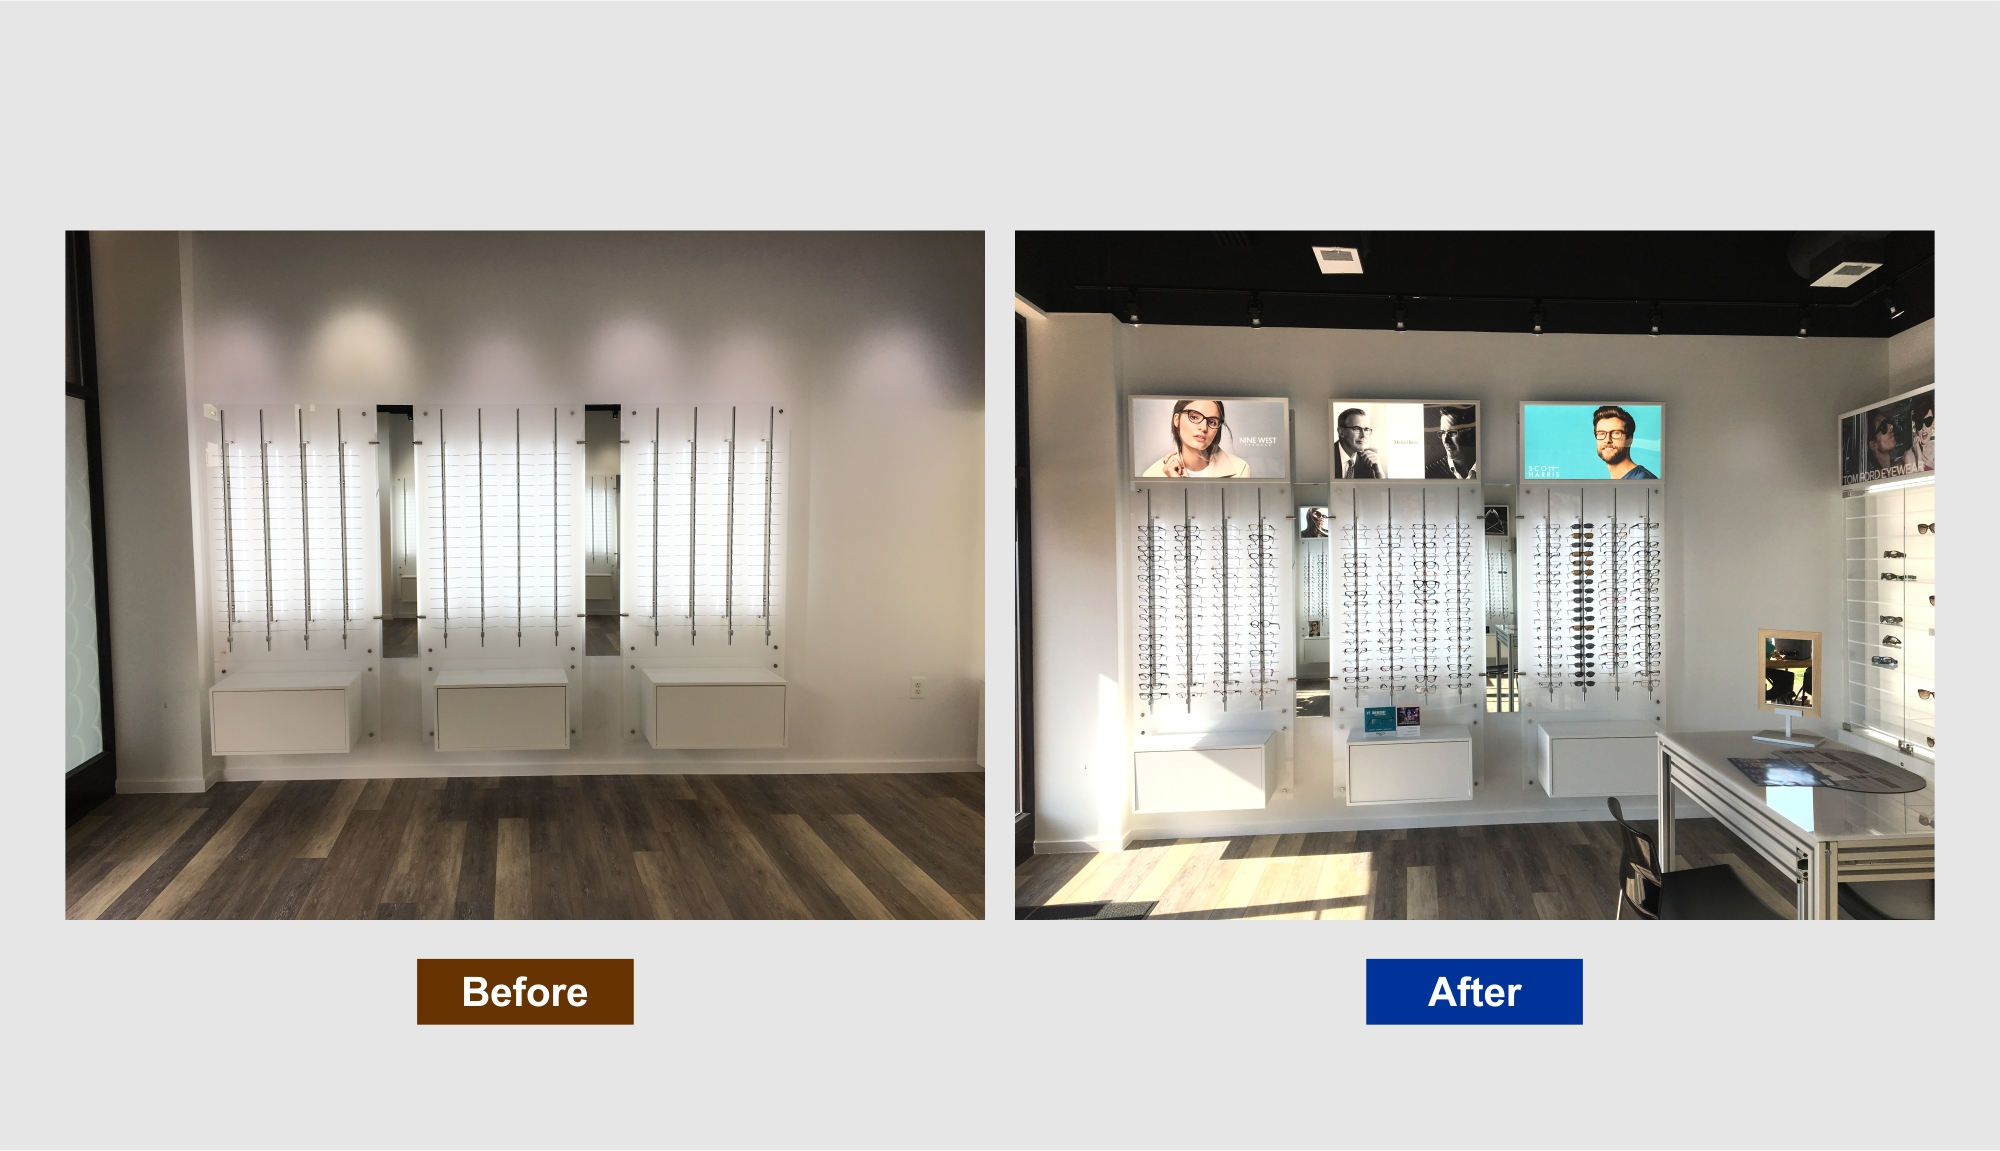 lighting frames. Frames Also Make Graphic Changes A Breeze. Our Design Department Can Work With You To Produce And Customize The Artwork Need For These Light Boxes. Lighting